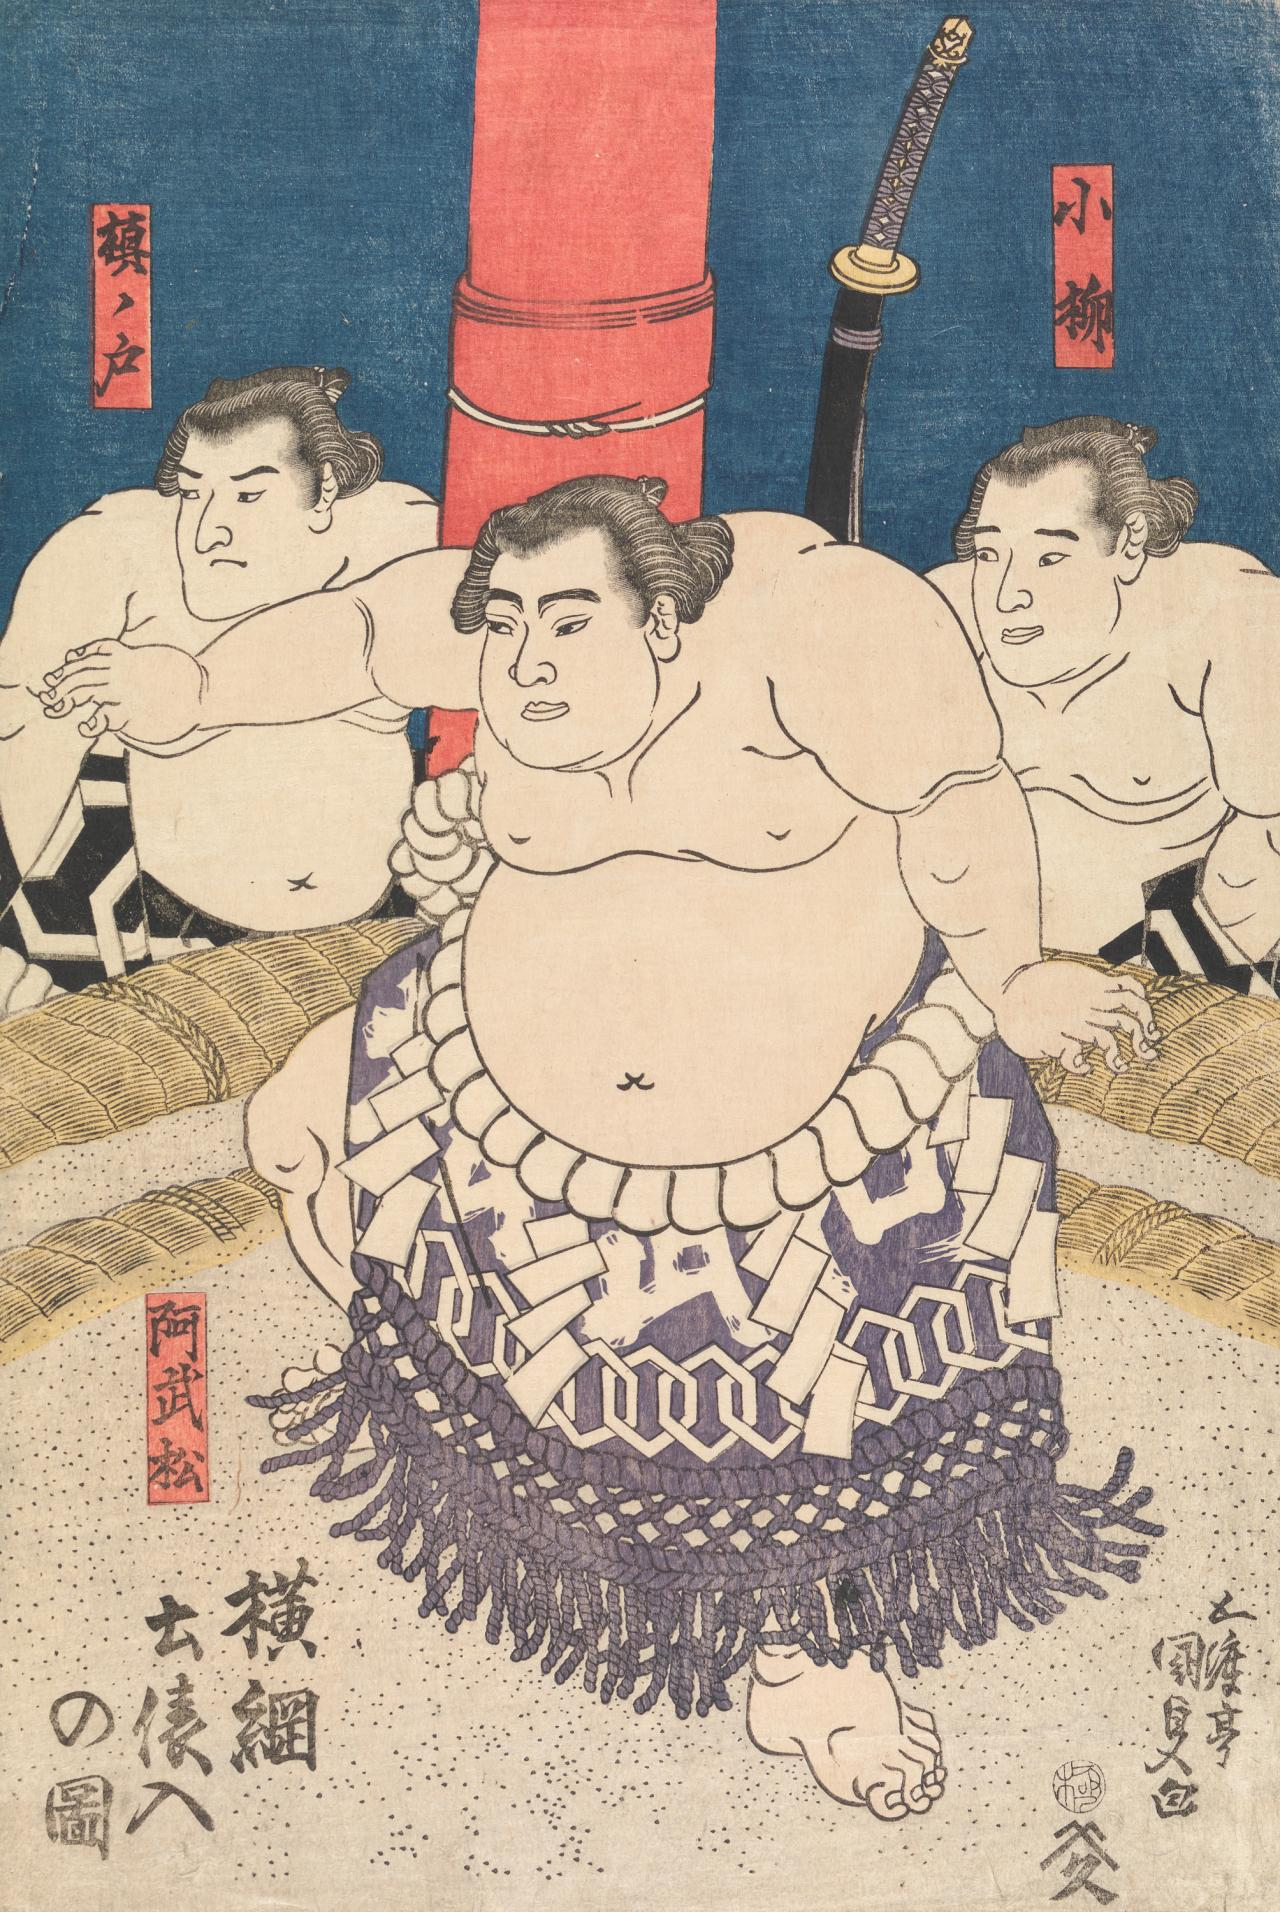 Champion sumo wrestler entering the arena